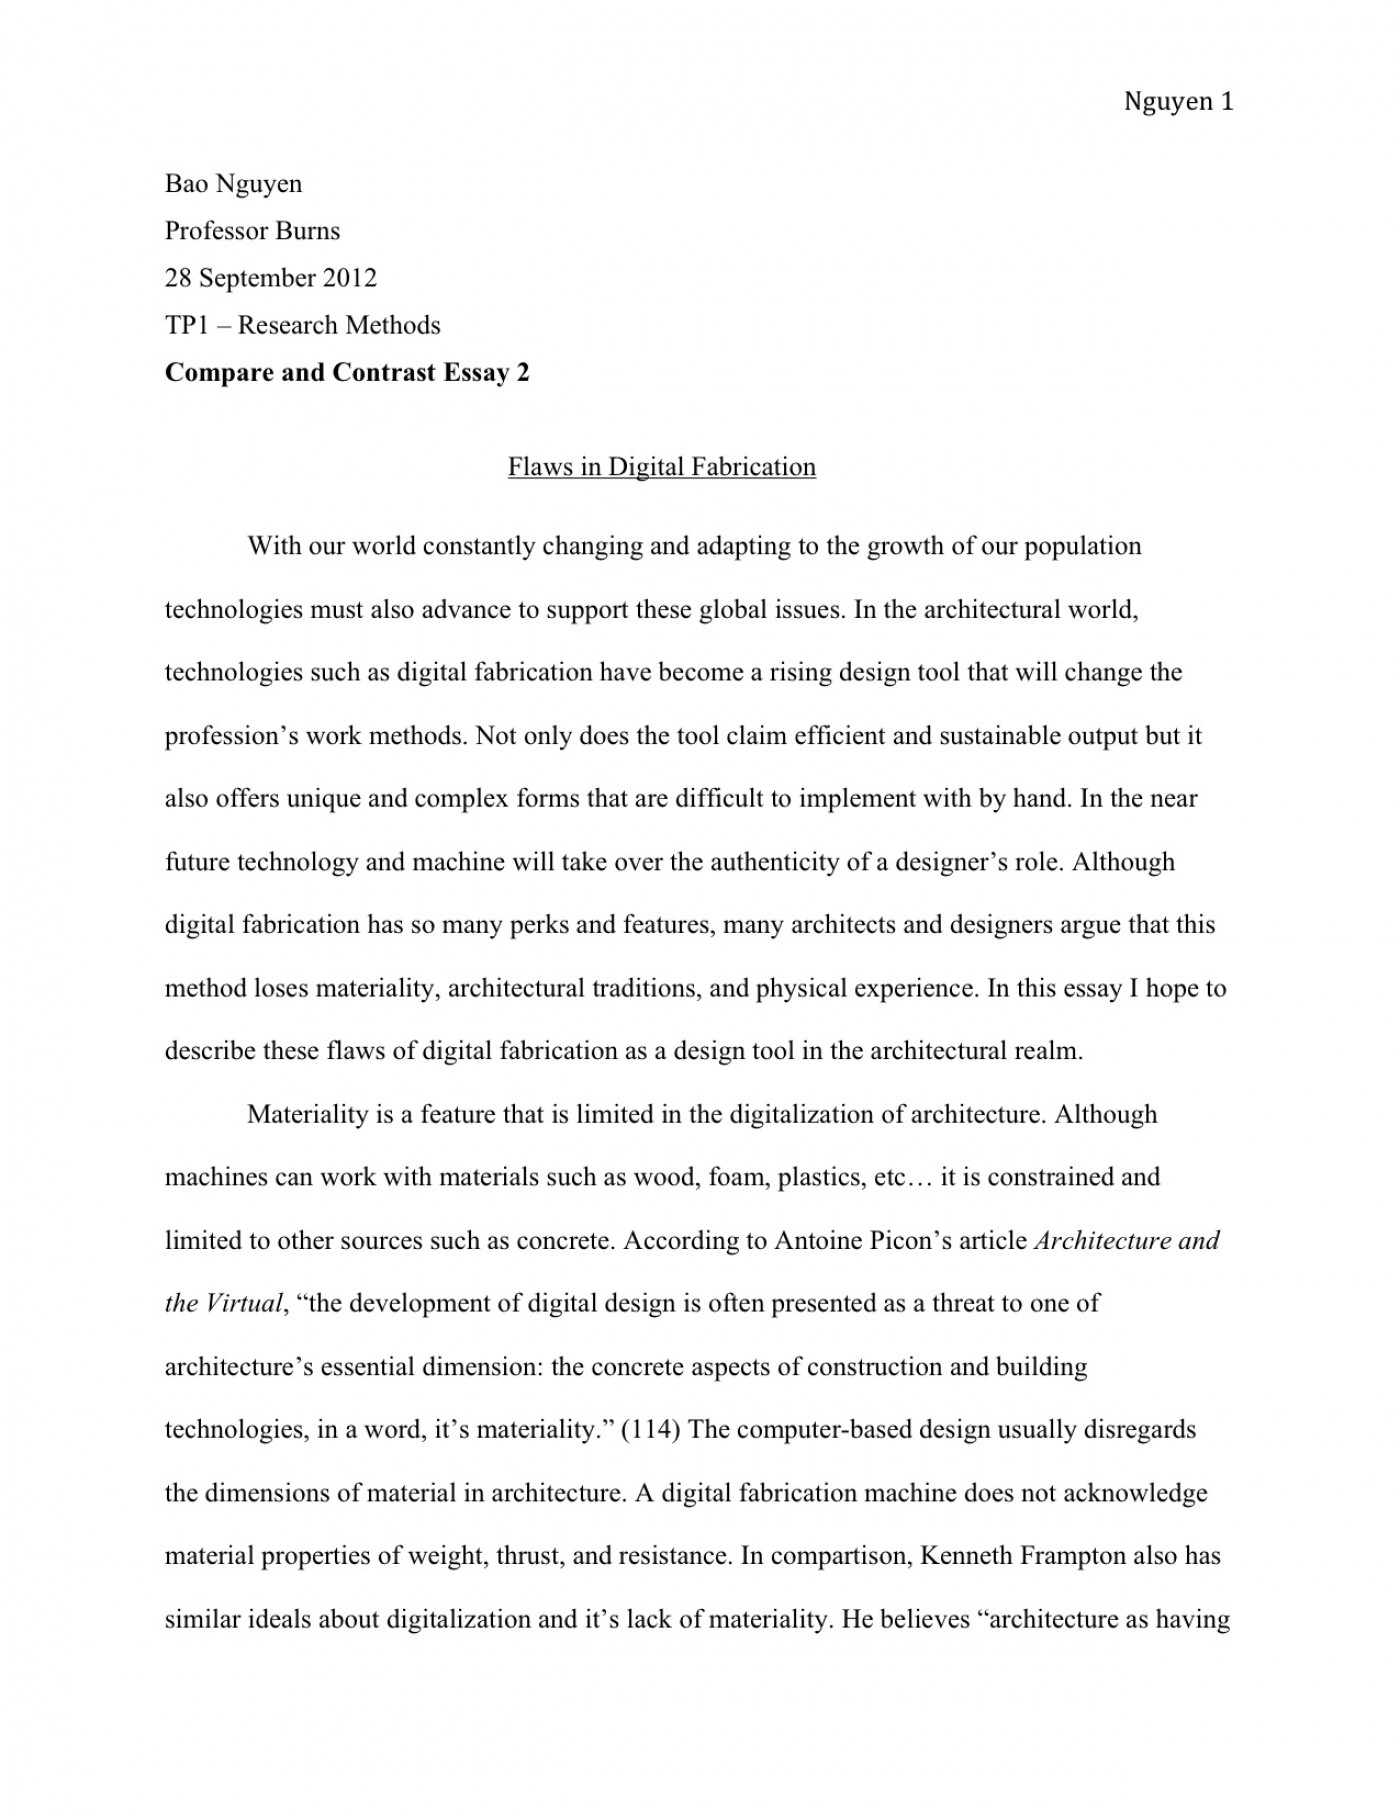 007 Essay Example Good Hooks For Essays Tp1 3 Unforgettable About War Examples Of Expository Heroes 1400